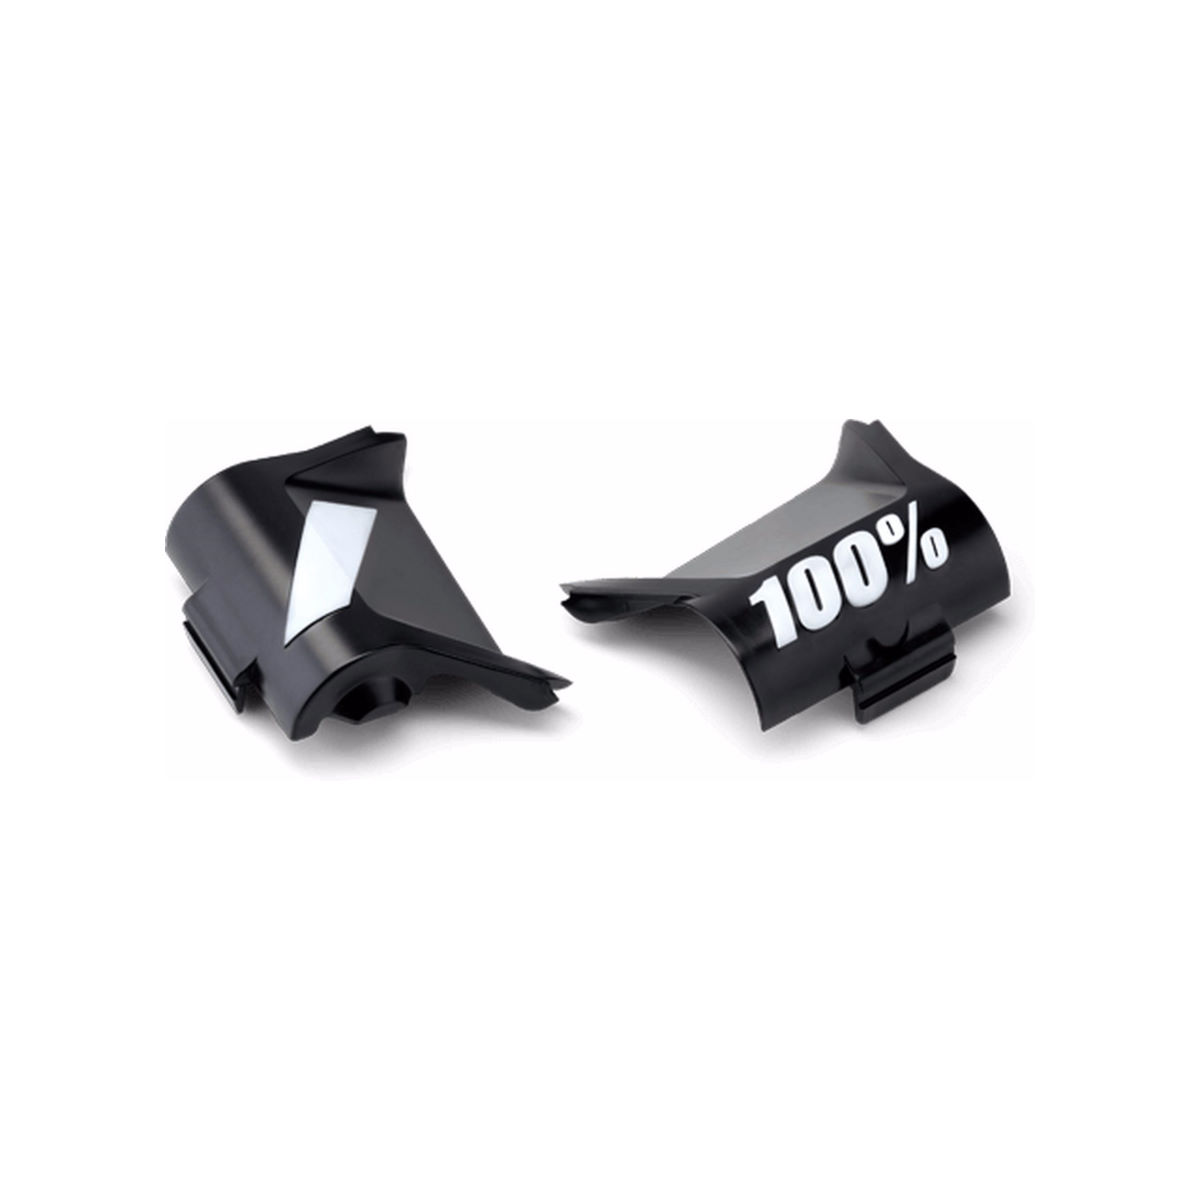 100% Forecast Replacement Canister Cover Kit - Gafas de sol